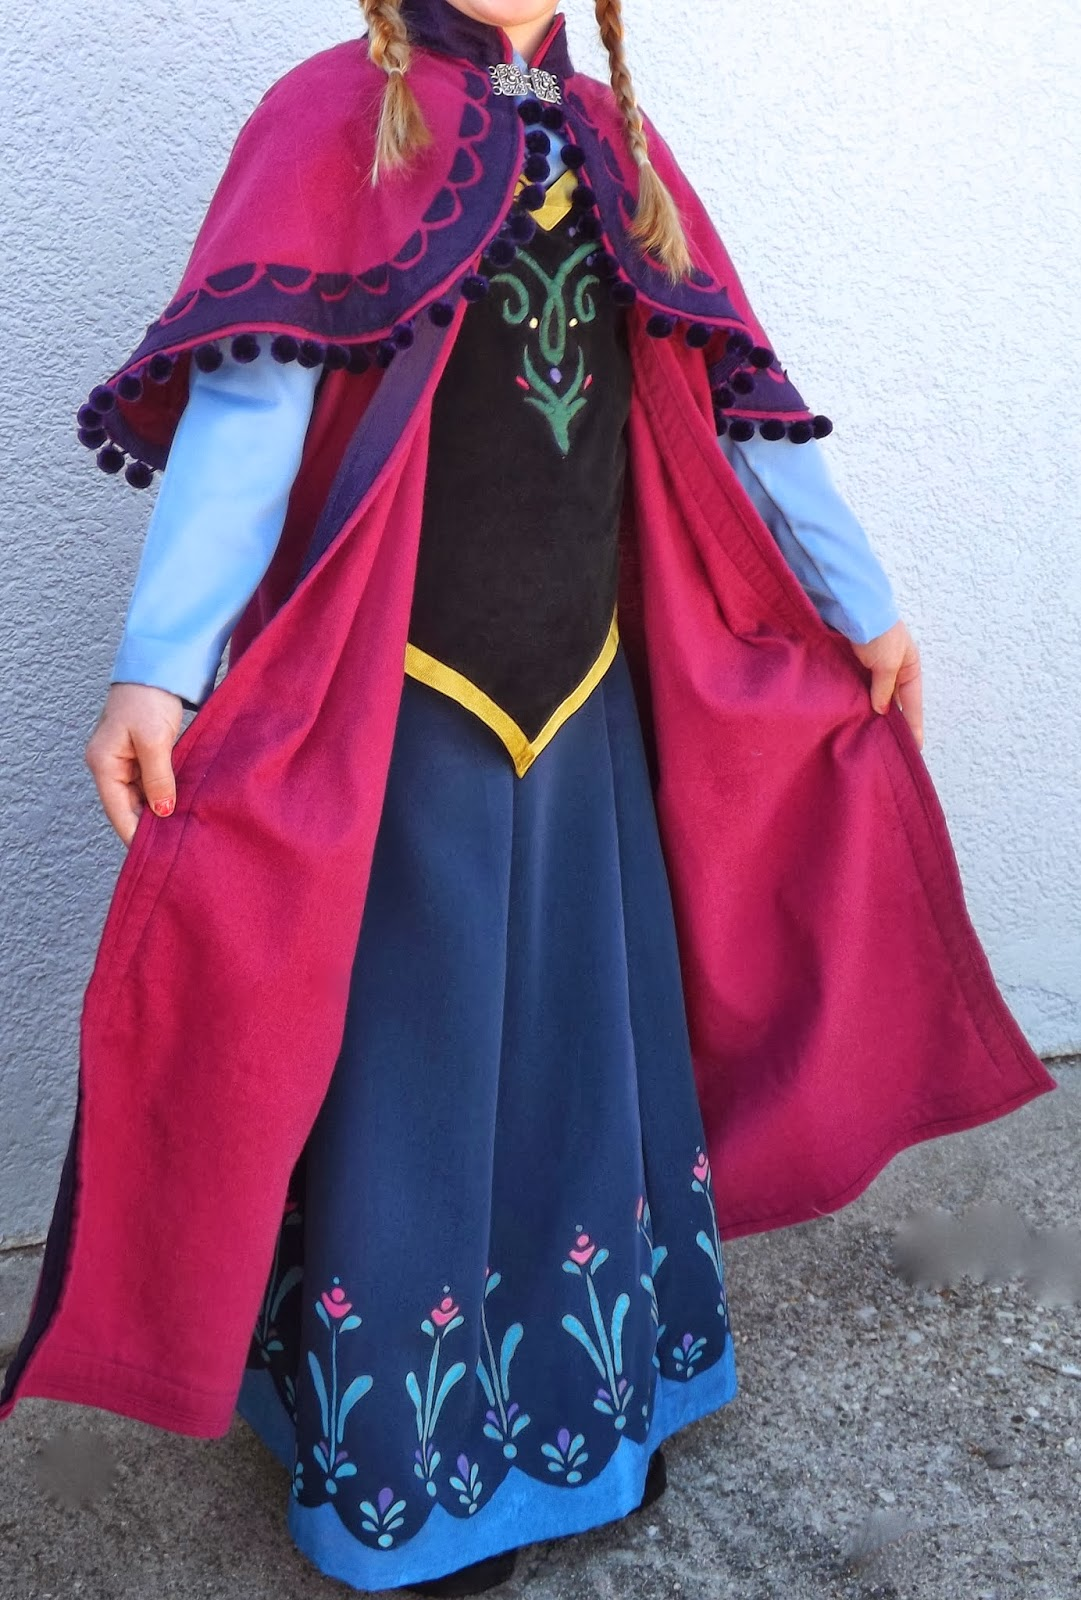 Disney Frozen Anna Costume Patterns